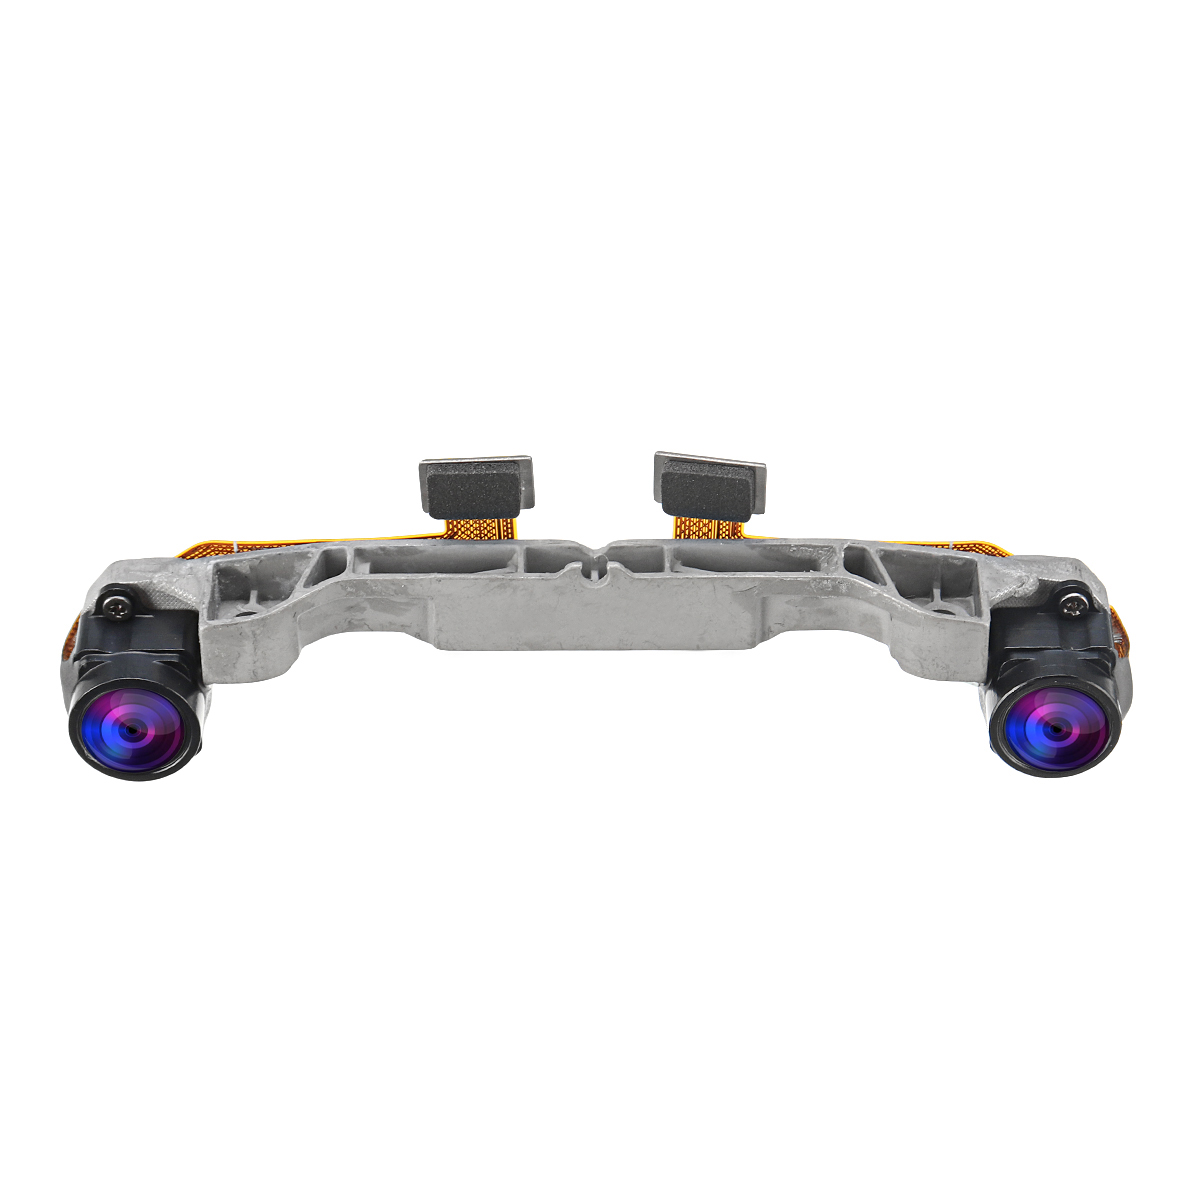 Front Vision Position Sensors VPM VPS Forward Visual Obstacle RC Quadcopter Parts for DJI Mavic Pro - Photo: 3